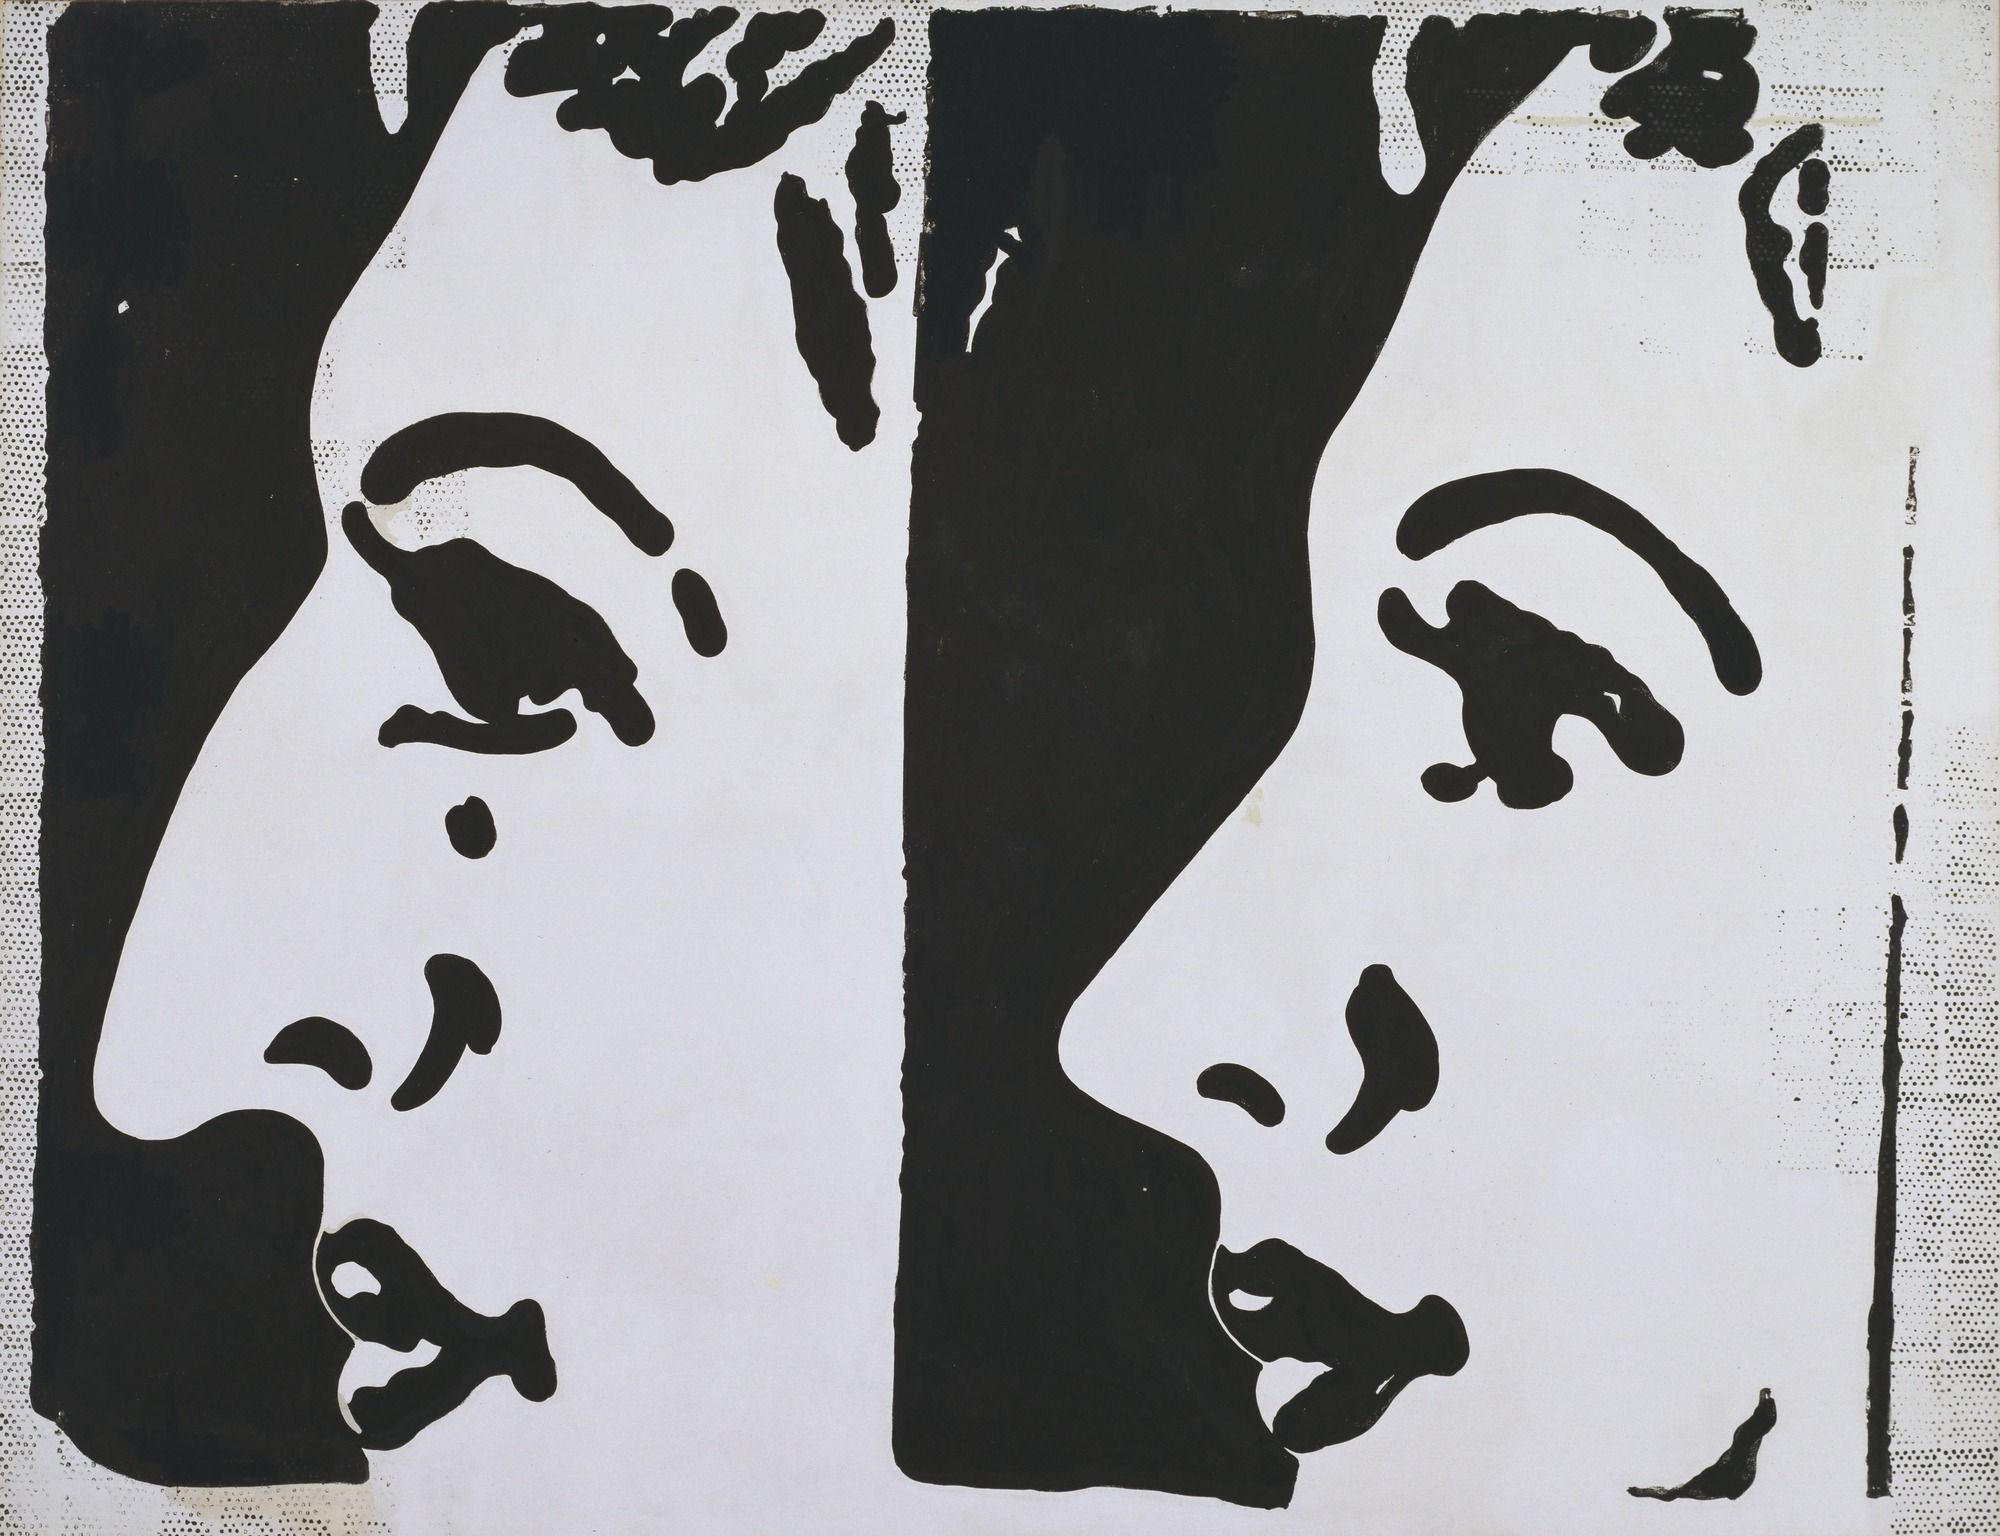 Andy warhol before and after 1961 in 2020 andy warhol